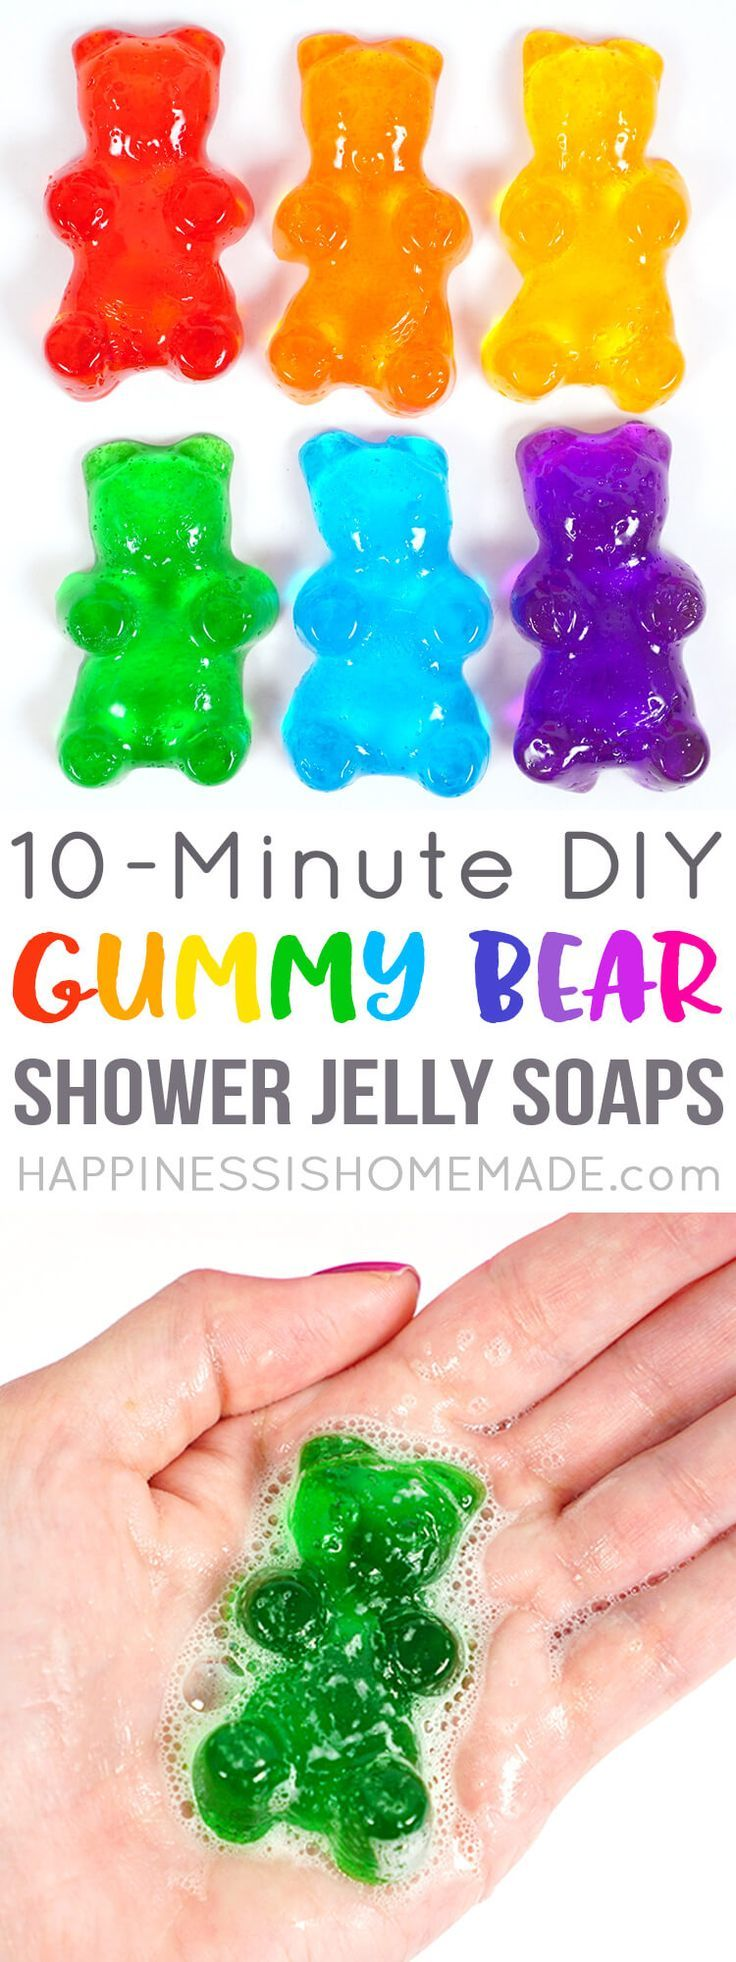 These quick and easy gummy bear shower jelly soaps make a great homemade gift idea! Make your own customized DIY Lush shower jellies in fun shapes, colors, and fragrances – just like these adorable rainbow gummy bear soaps!